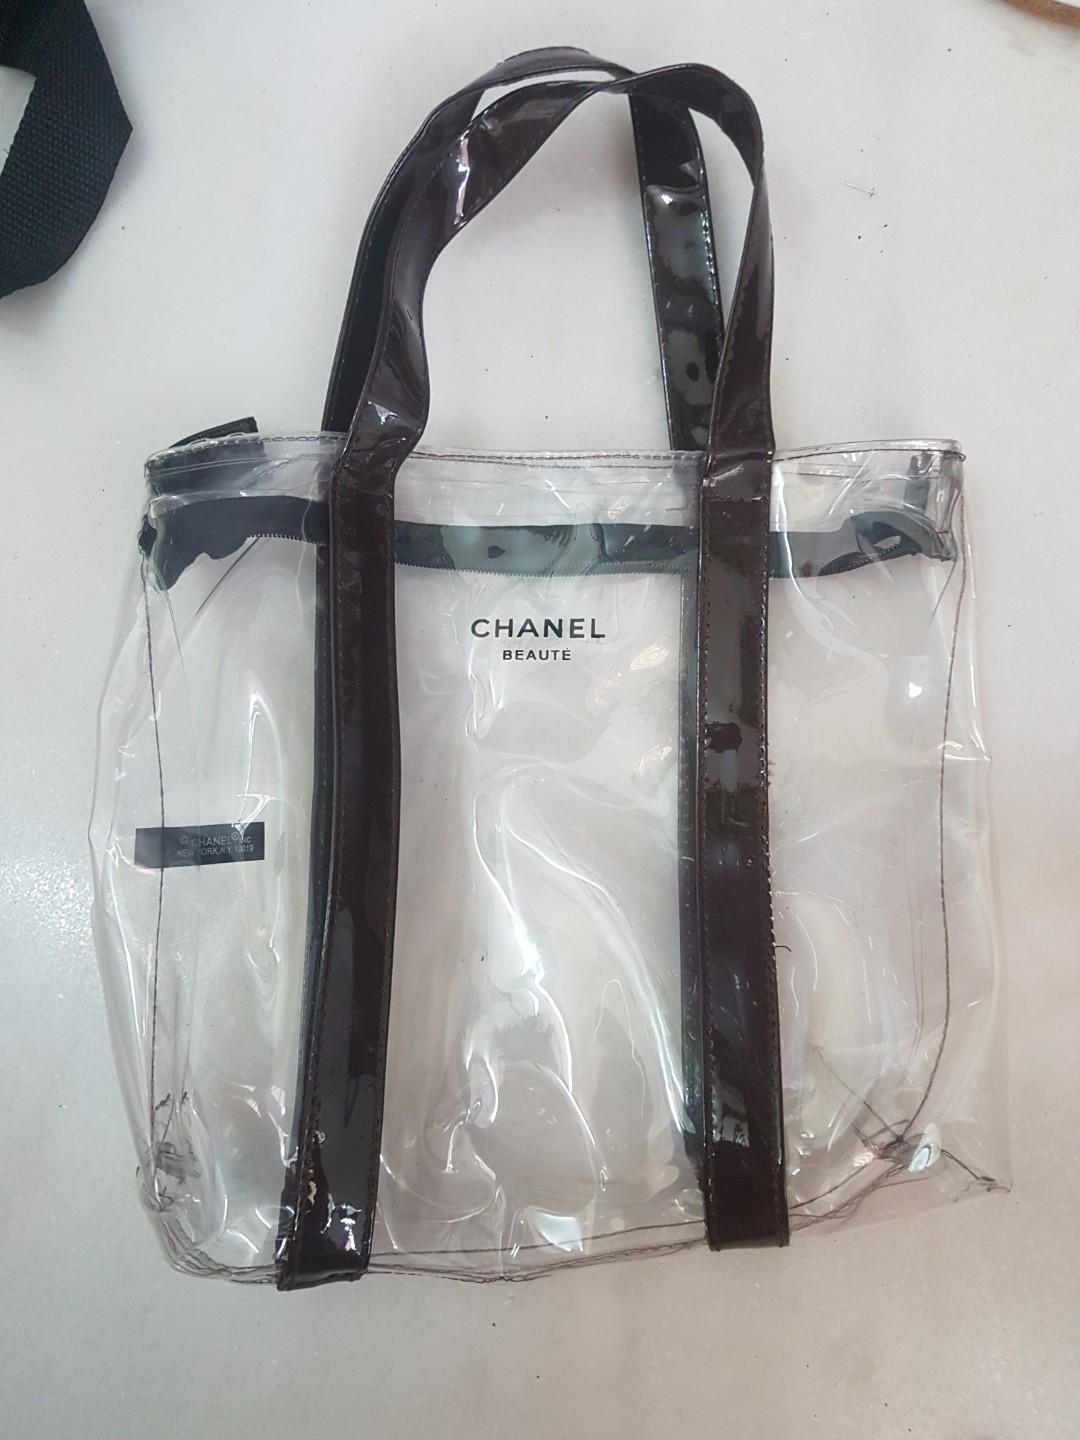 New Chanel Beaute Transparent Make up Bag pouch tote mini